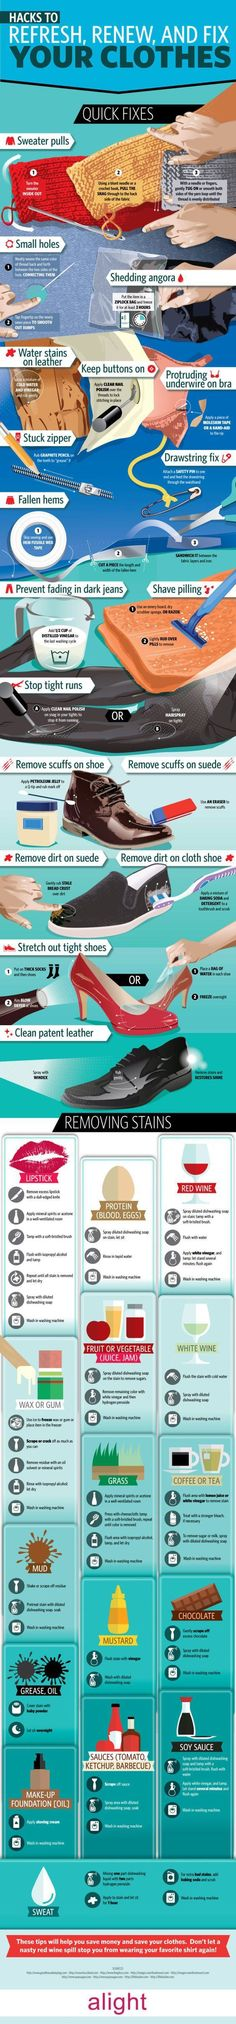 Refresh, renew and fix your clothing